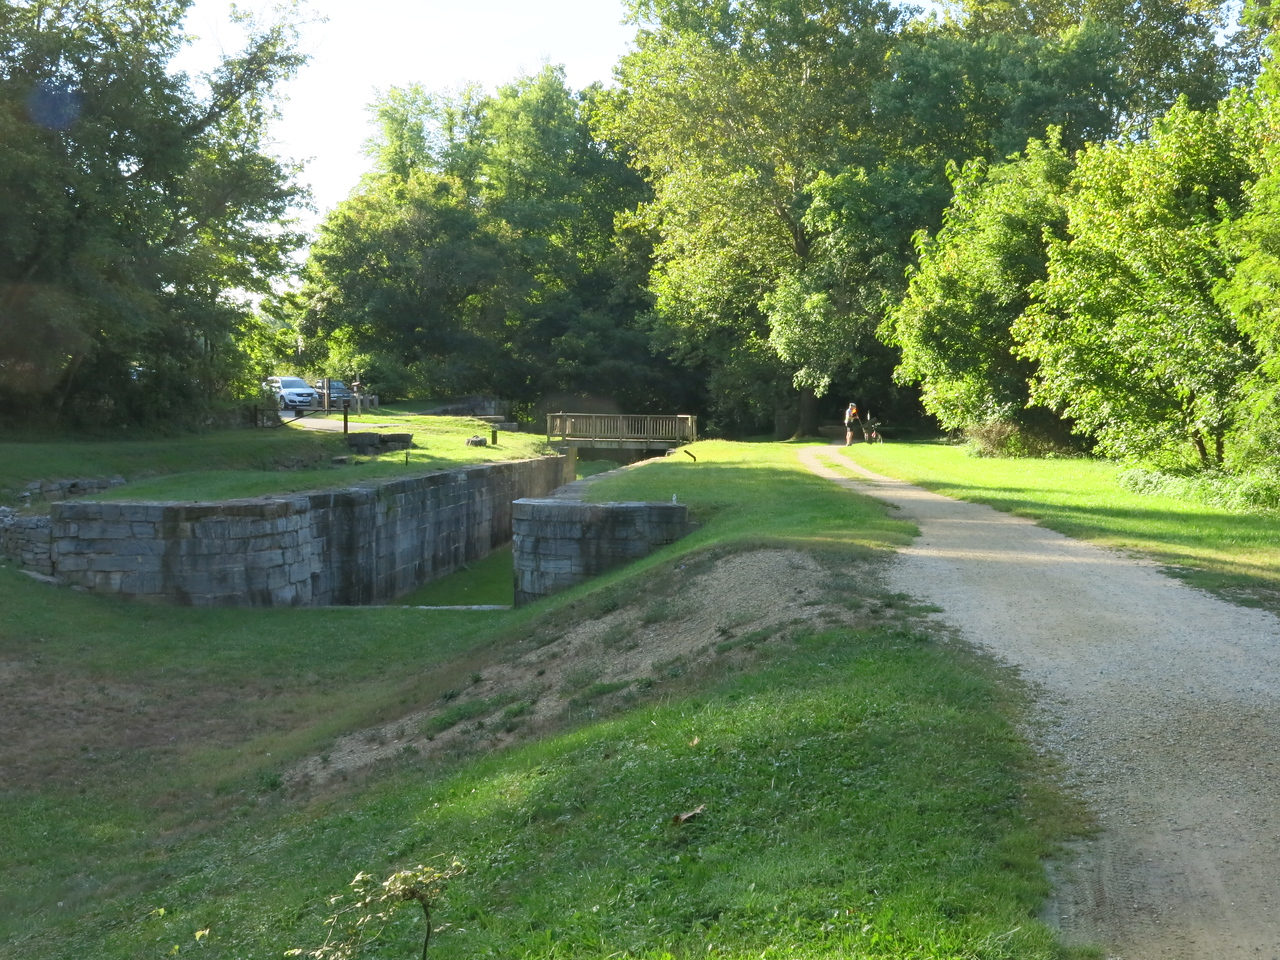 Lock 38 as seen from the towpath